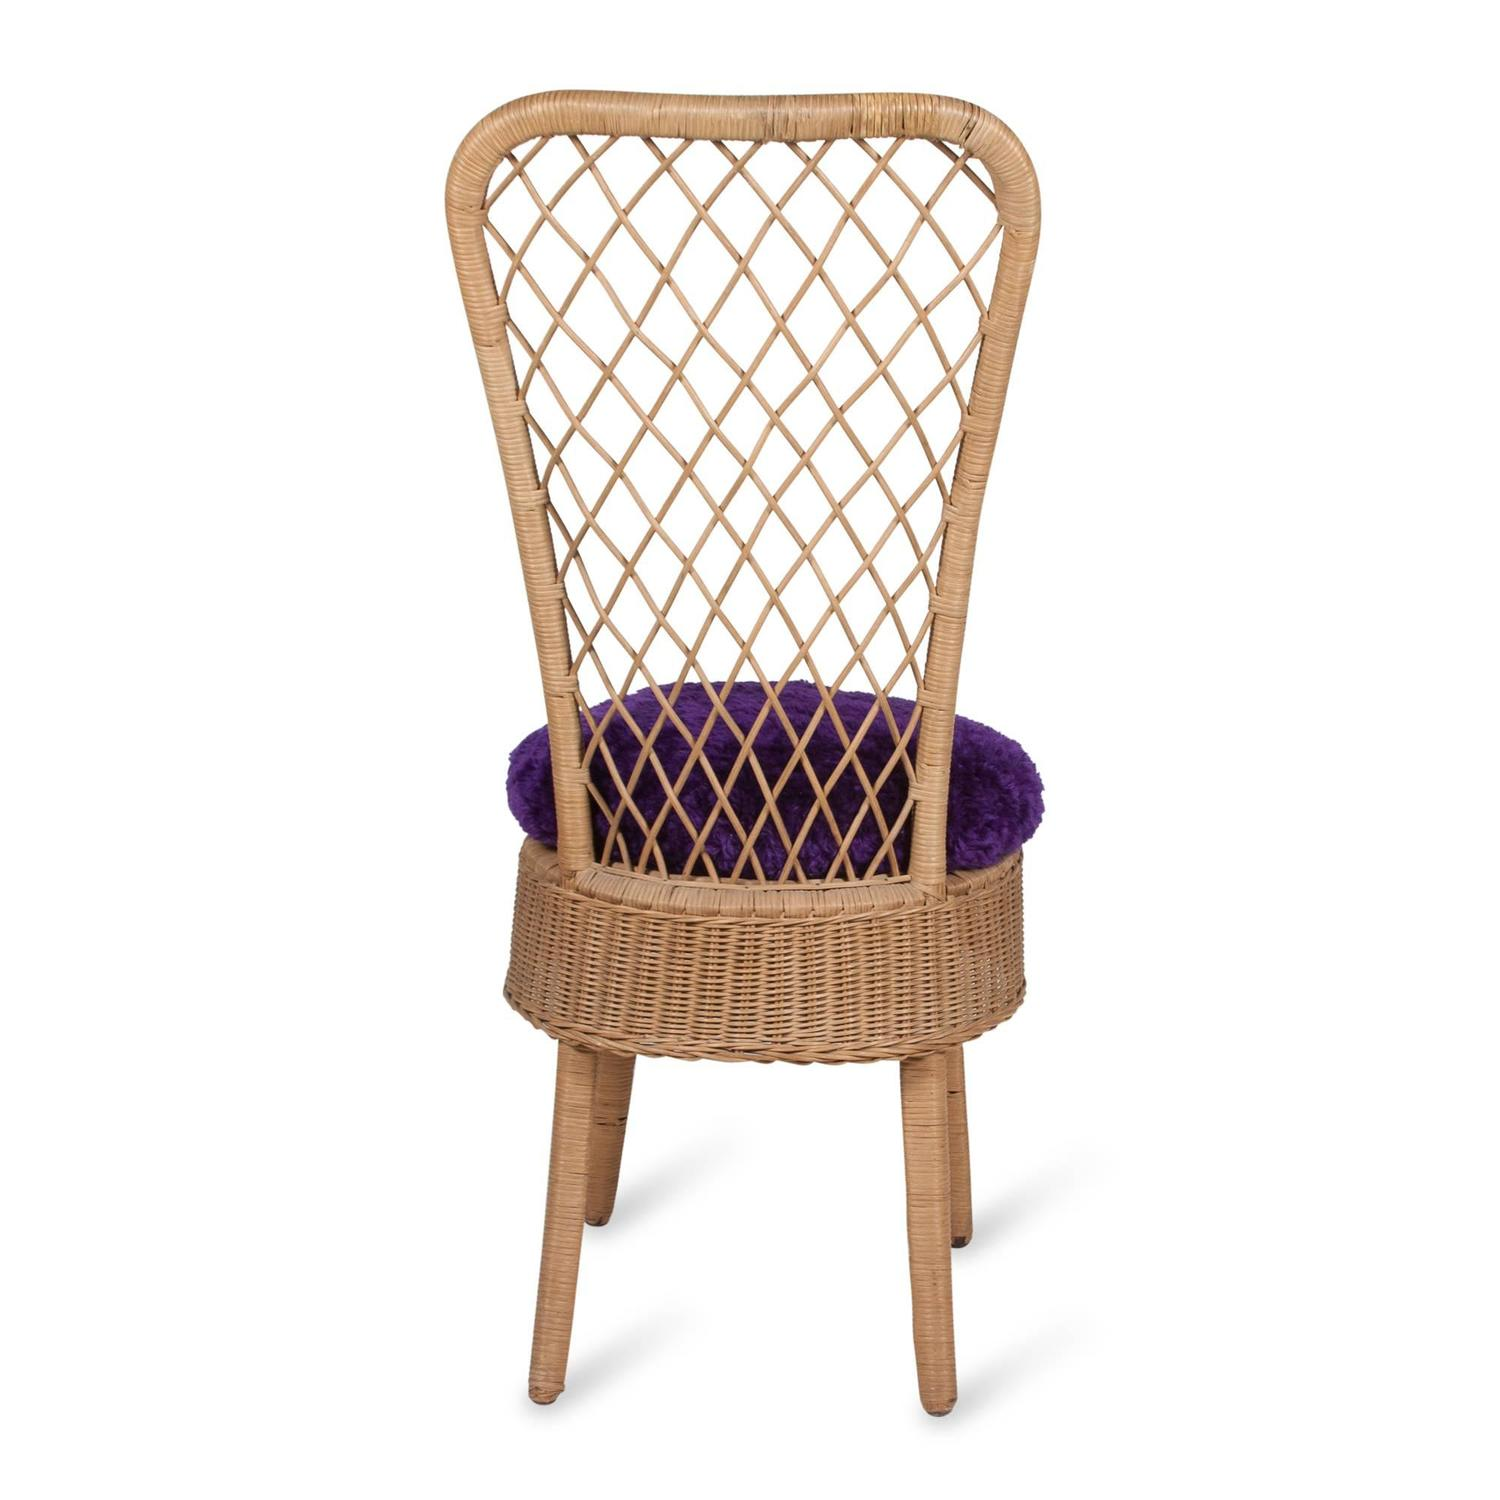 antique high back wicker chairs folding camping walmart rattan chair by jean royère for sale at 1stdibs